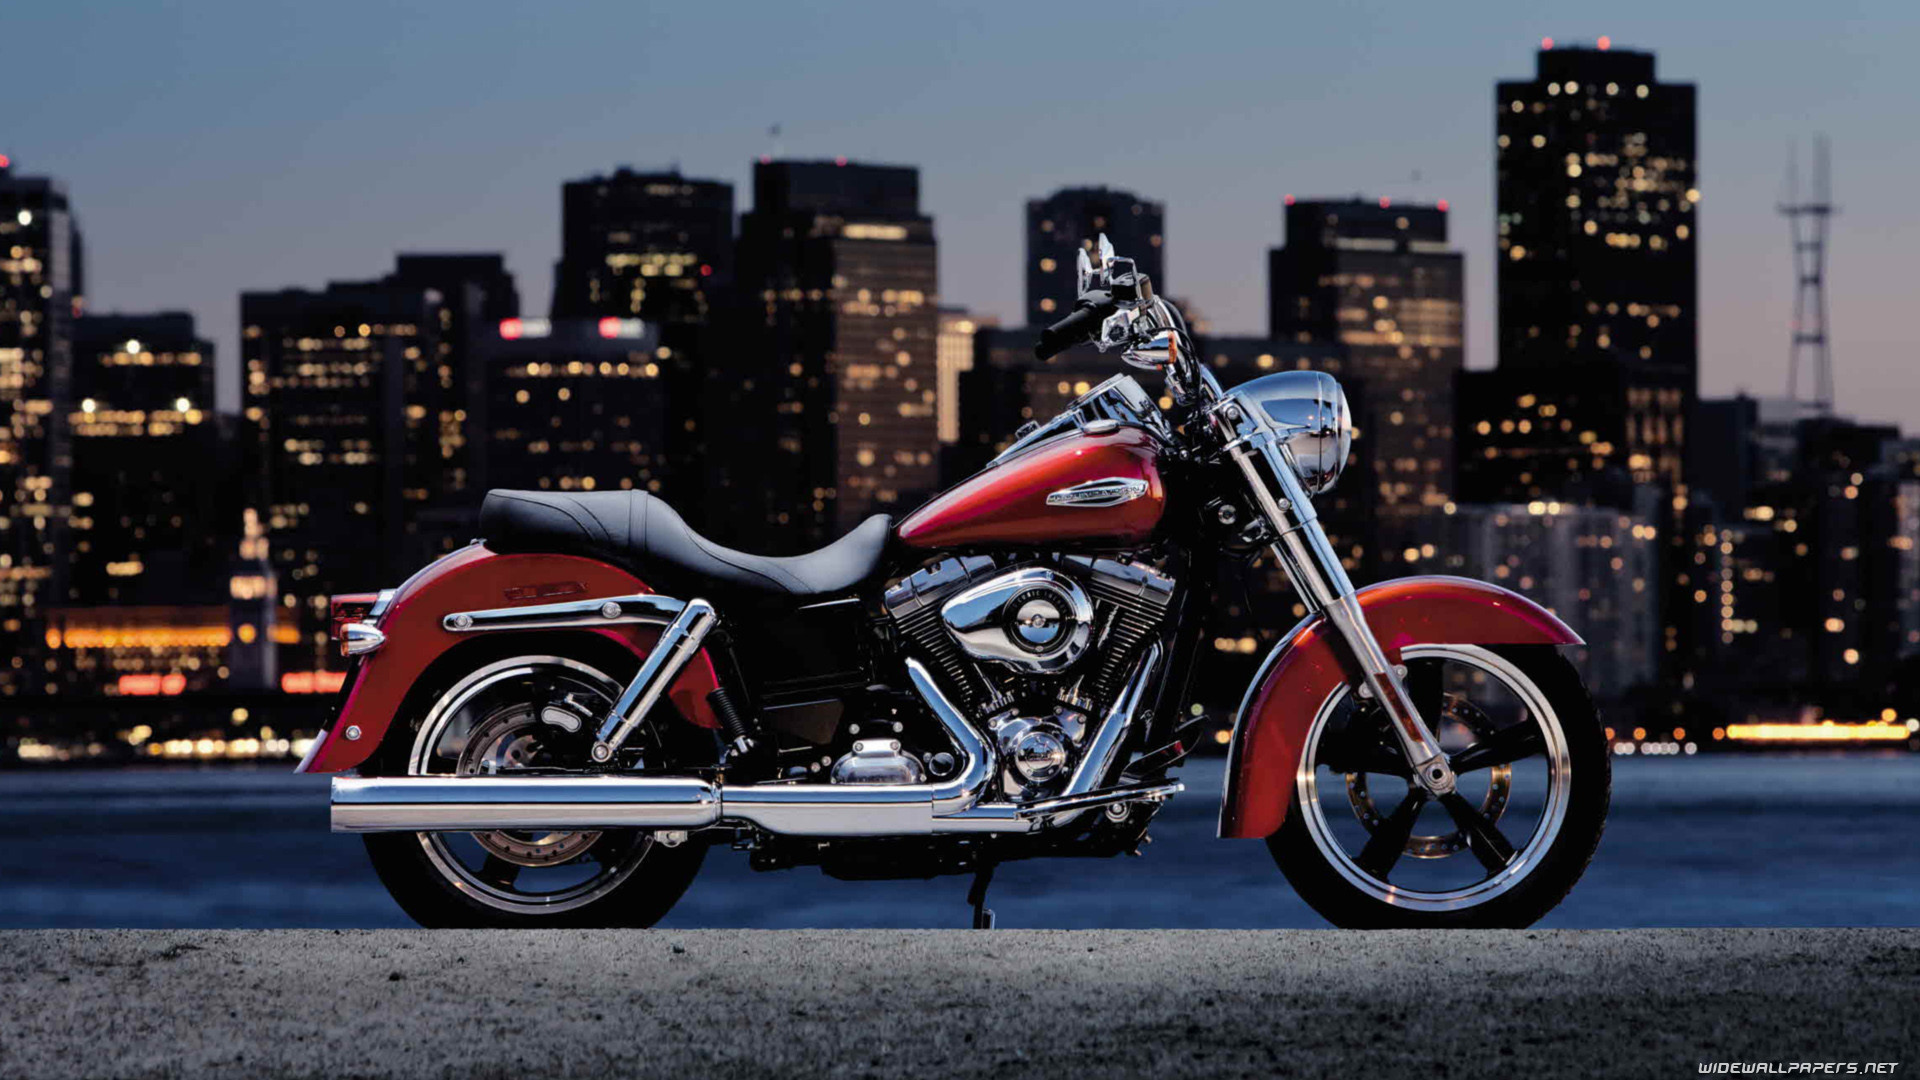 1920x1080 Harley-Davidson Dyna Switchback motorcycle wallpapers